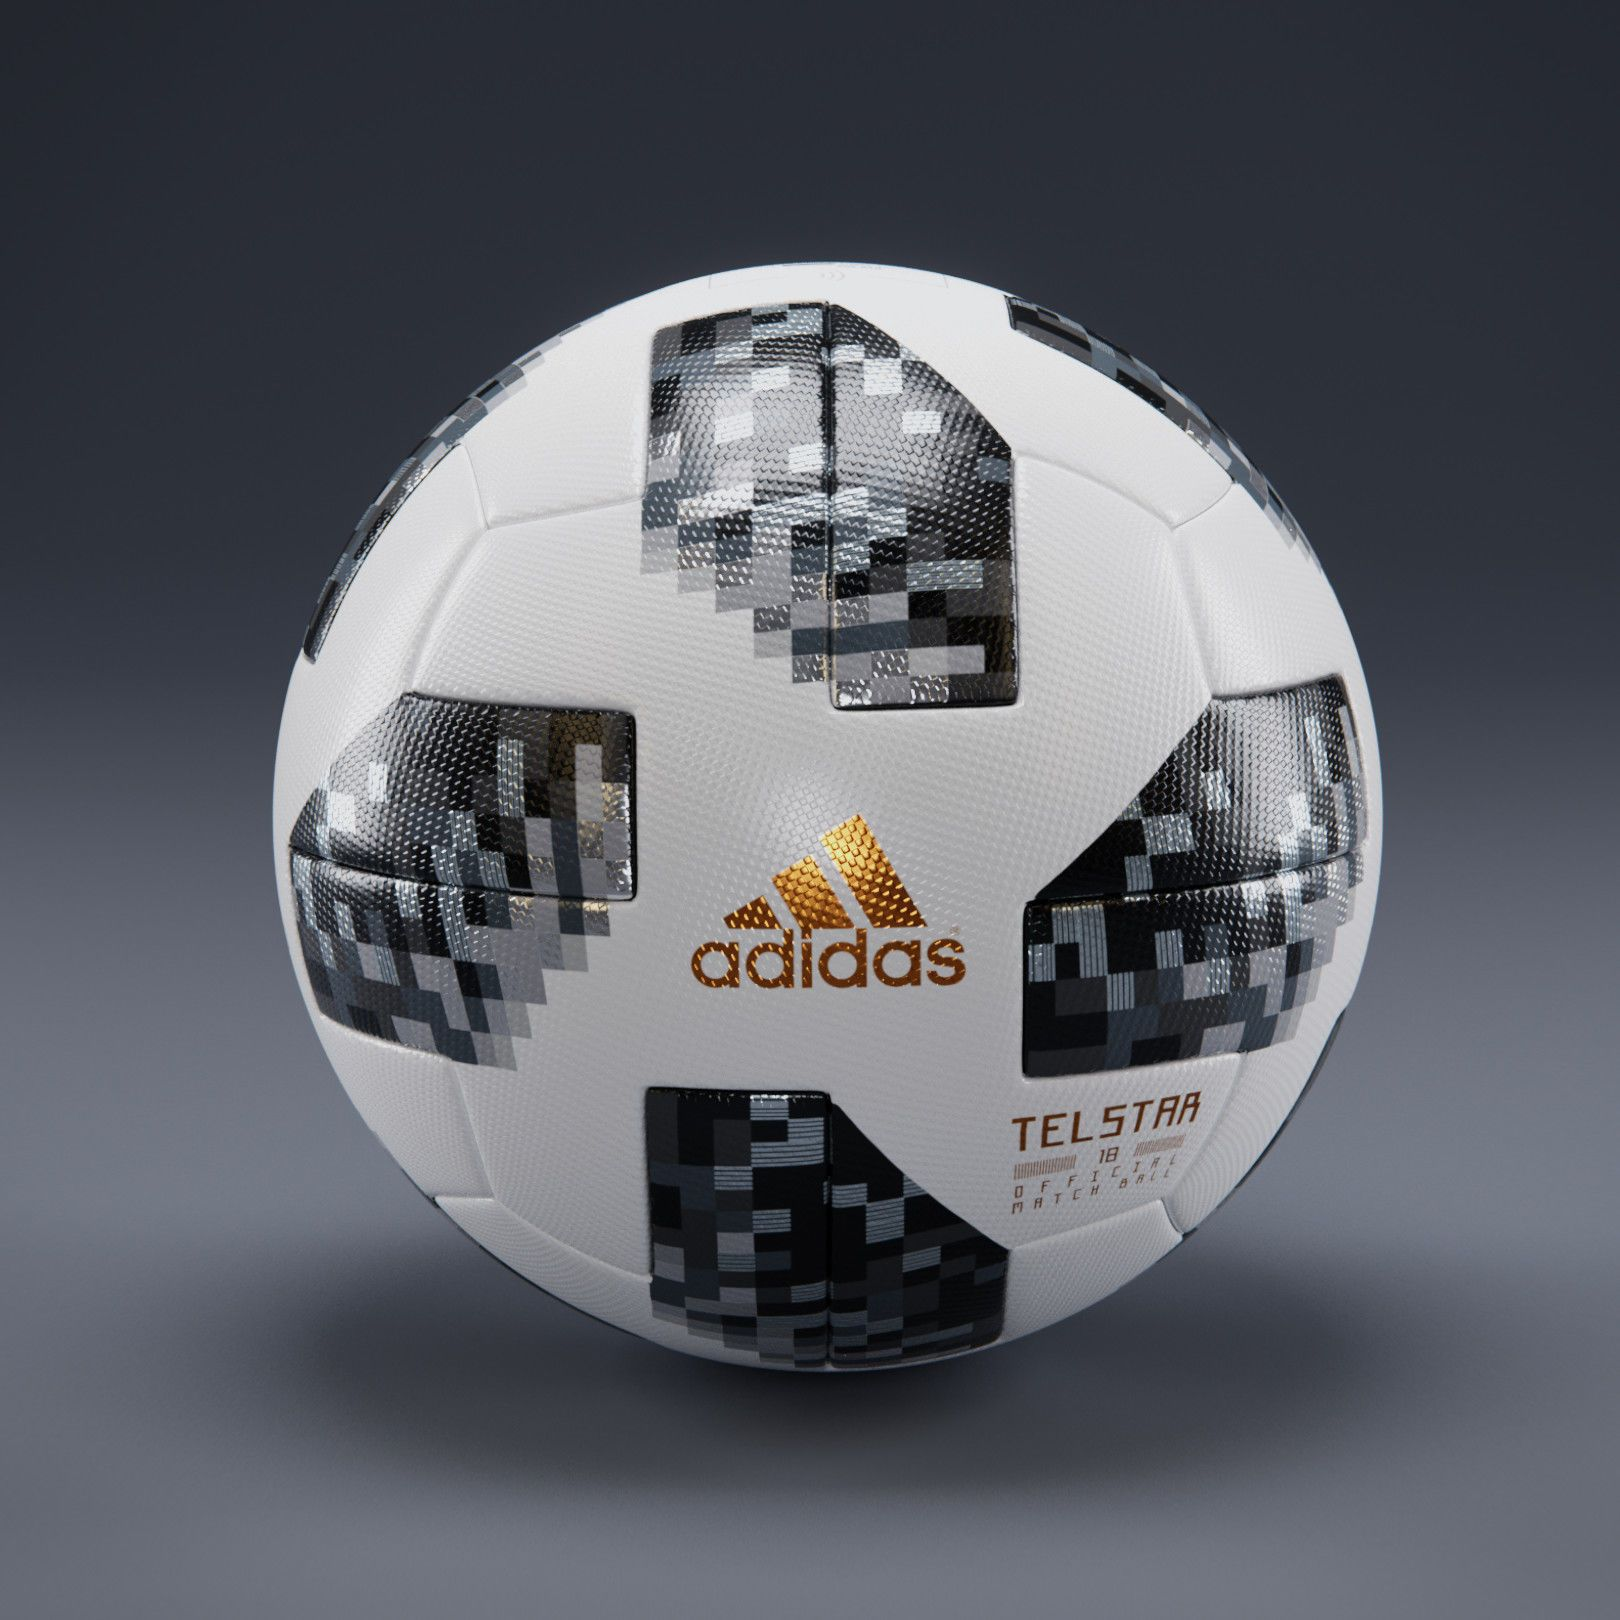 tono alojamiento Vatio  Telstar 18 – Adidas – Russia WorldCup-Official Ball- PBR Texture 3D model  3D Model of the Adidas – Telstar18 soccer ball, for the … | Soccer ball,  Soccer, 3d model